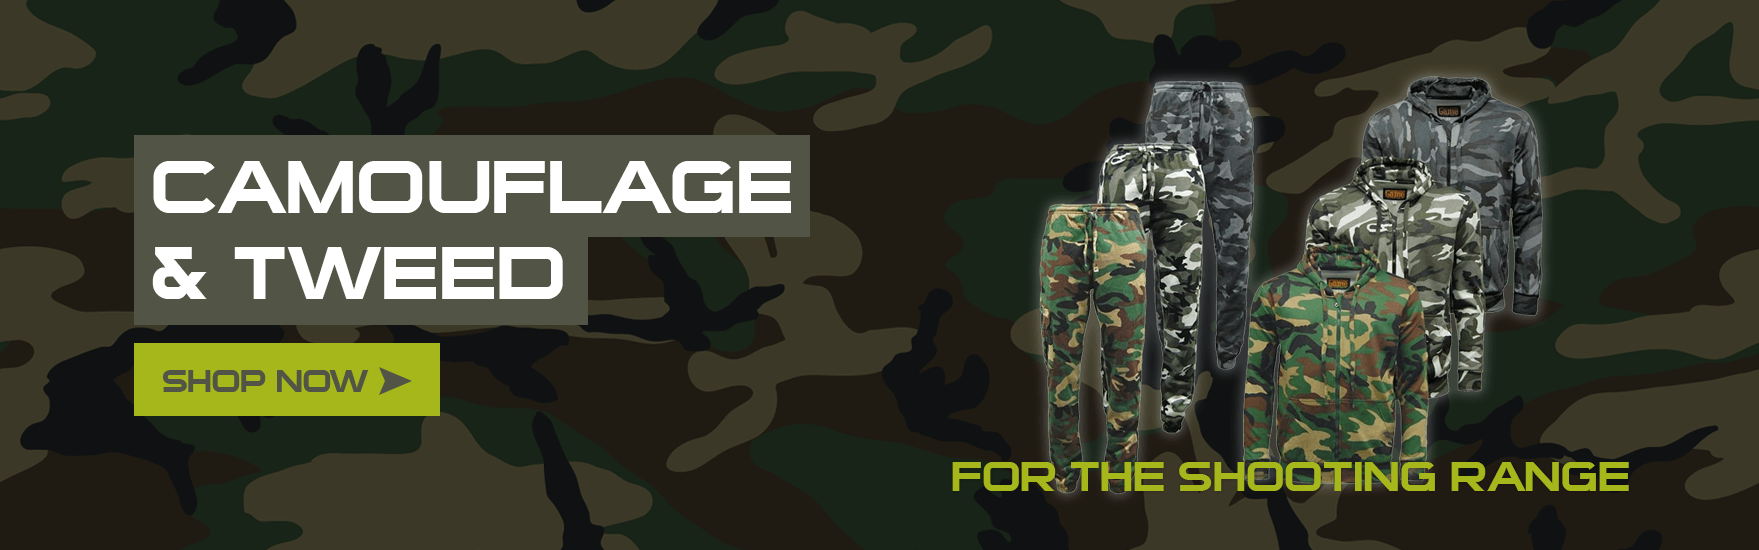 Camouflage & tweed Banner